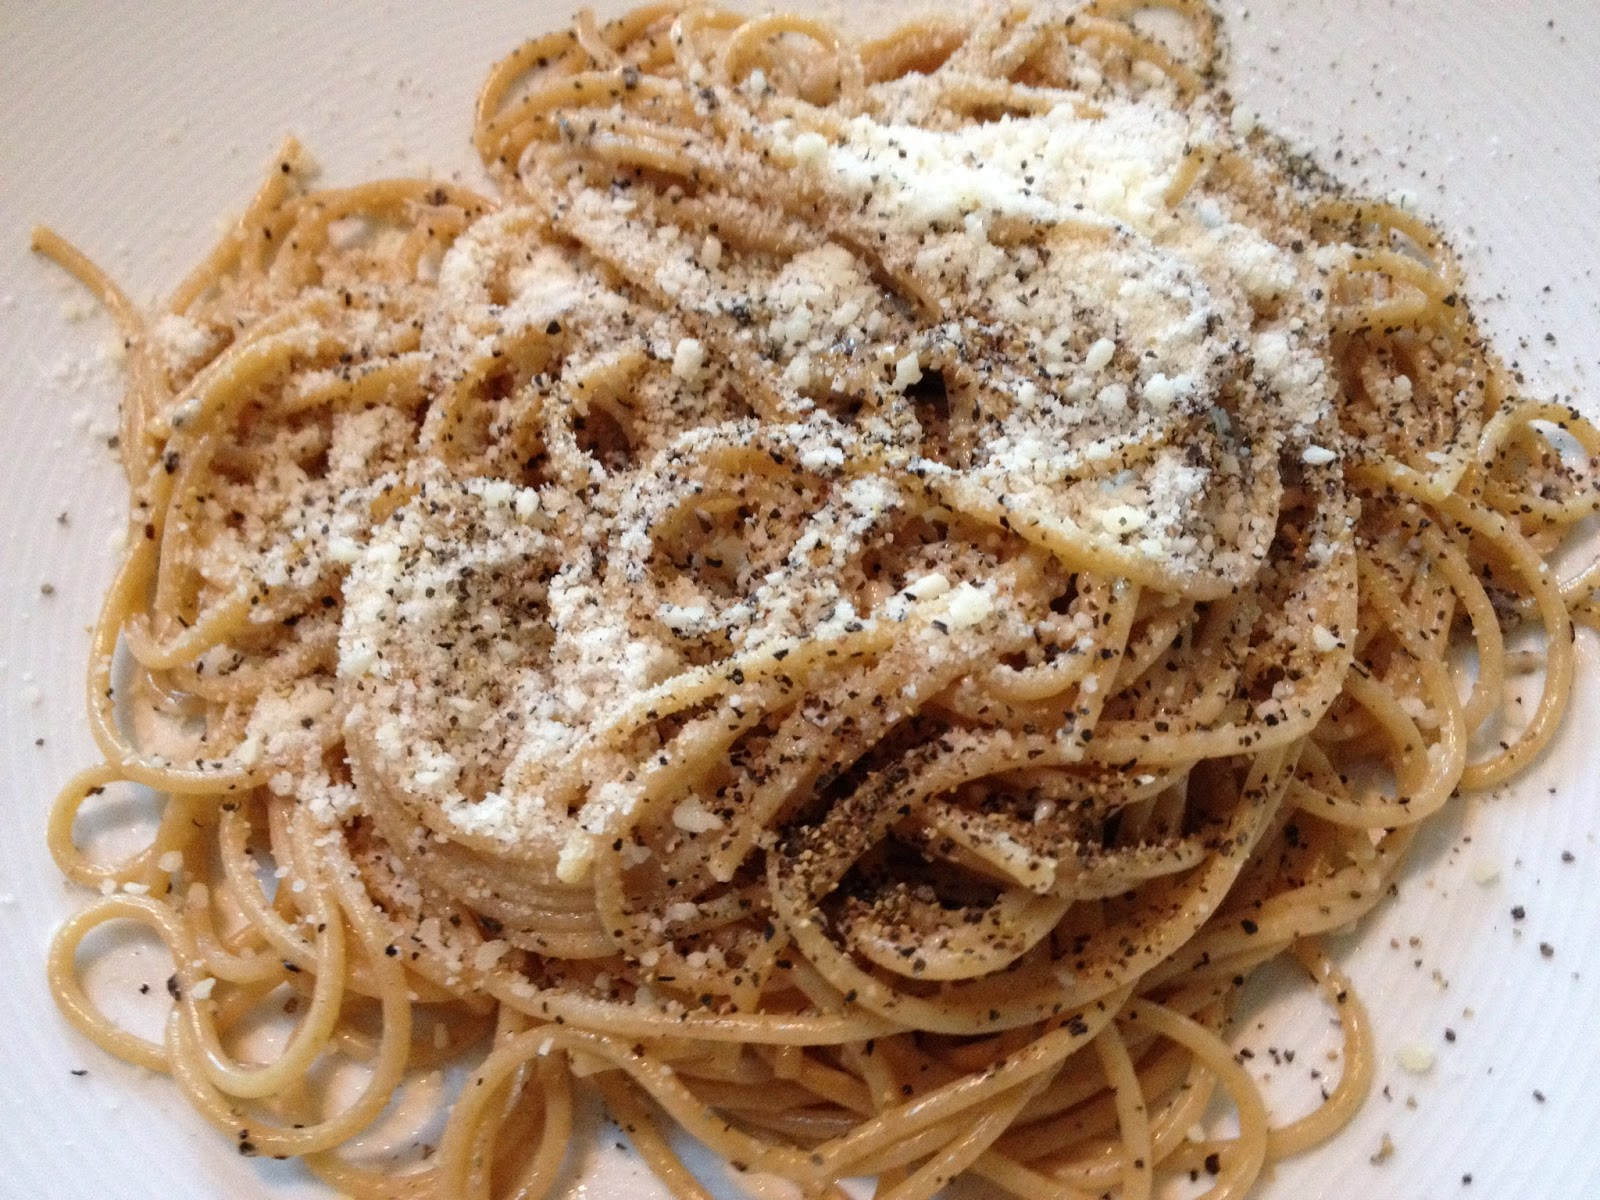 Organic whole-wheat spaghetti with grated cheese and black pepper.